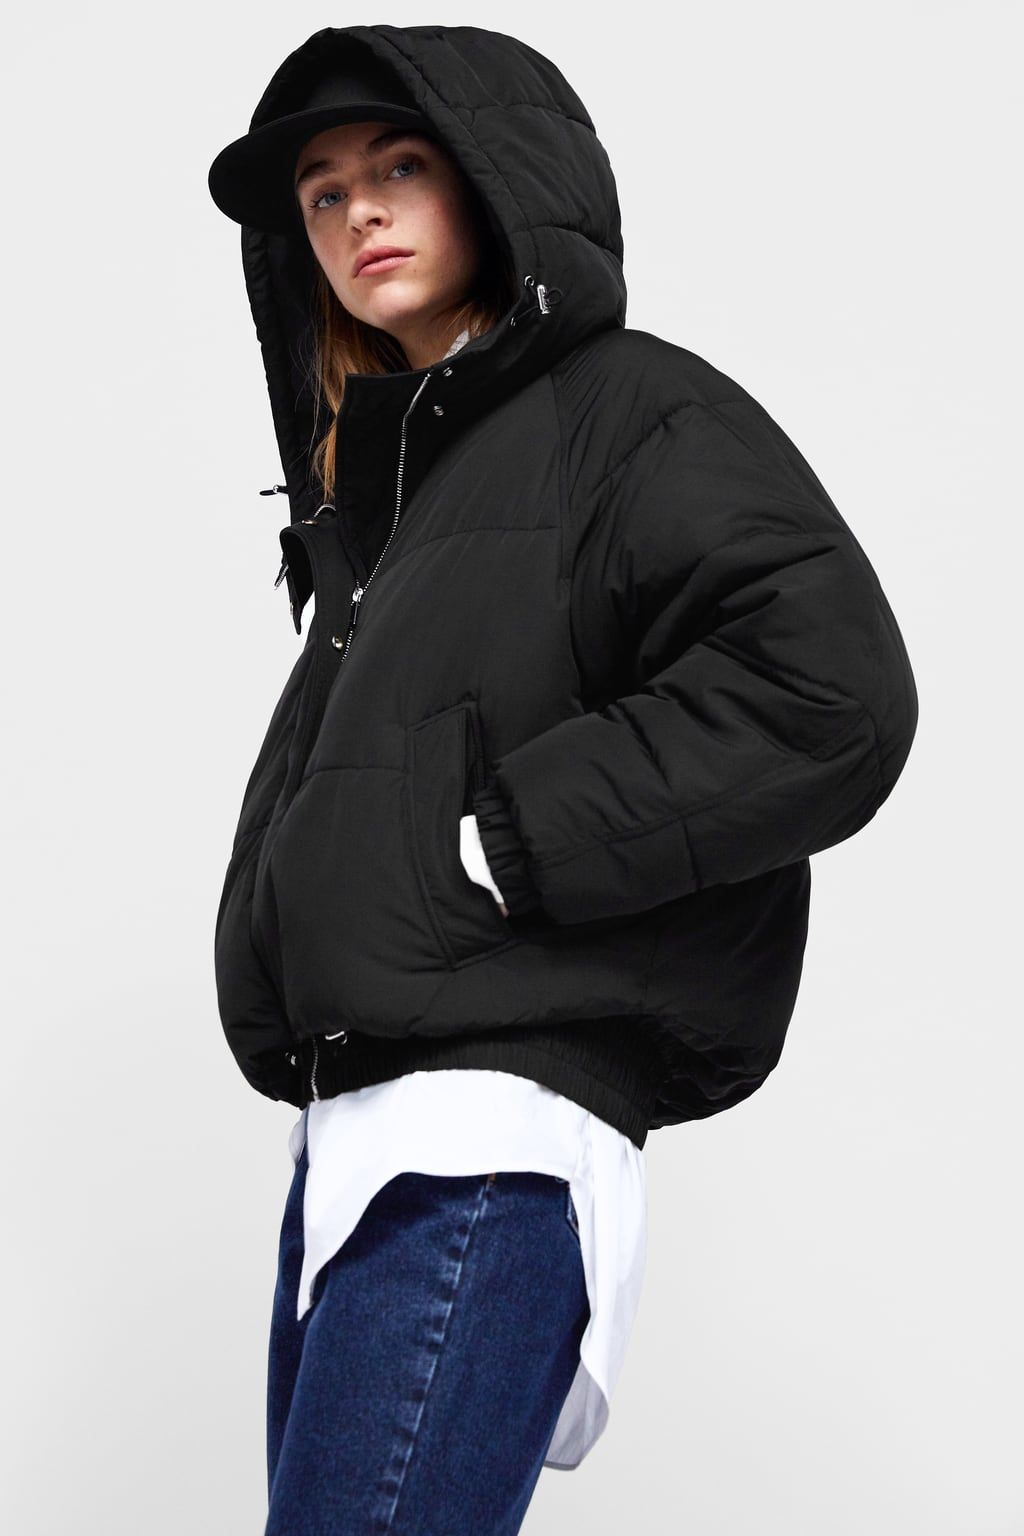 Image 6 Of Hooded Puffer Jacket From Zara Black Puffer Jacket Jackets Thrifted Outfits [ 1536 x 1024 Pixel ]